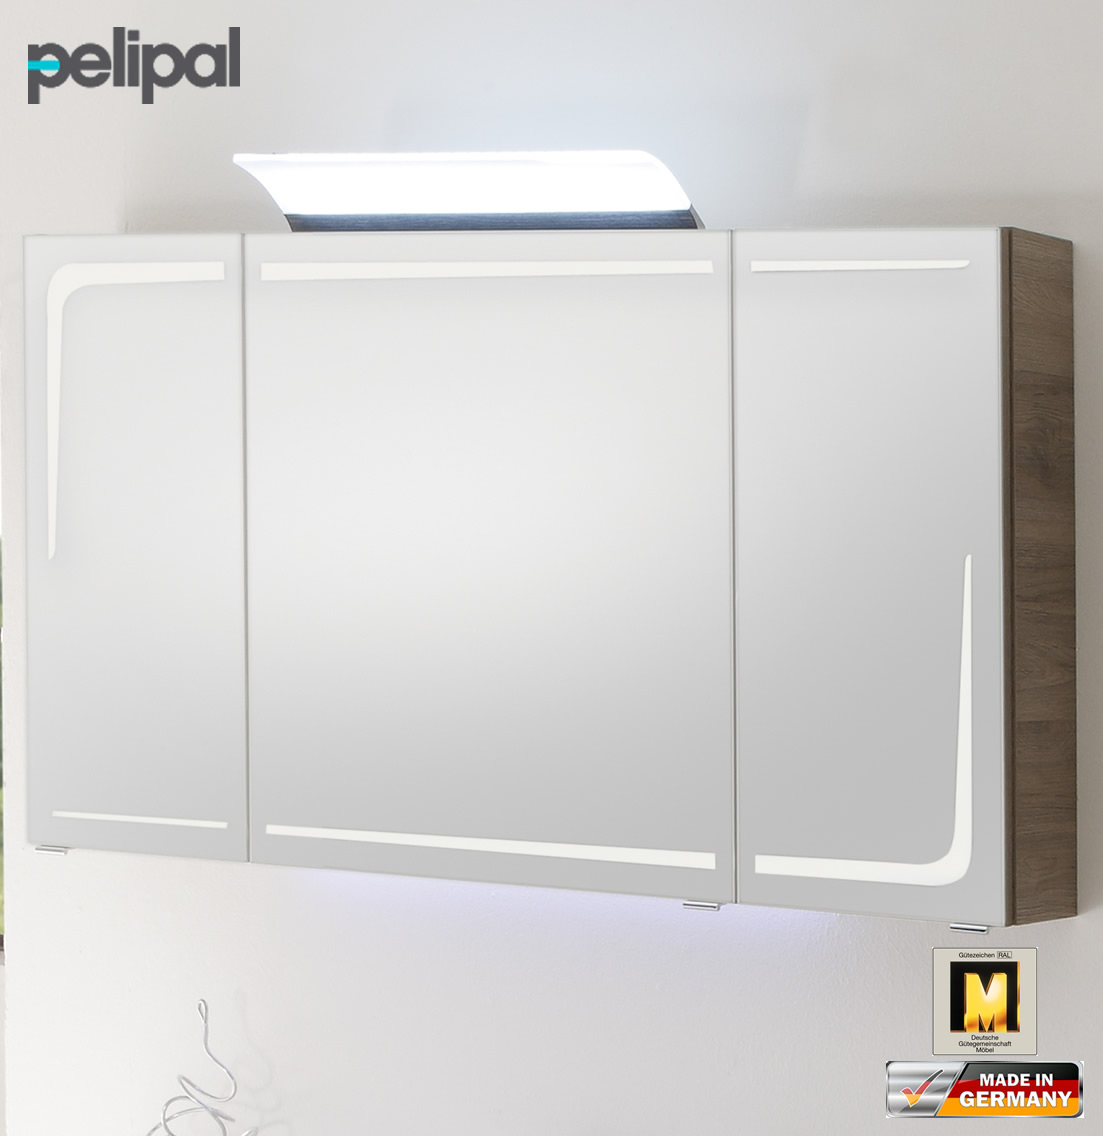 pelipal solitaire 7005 spiegelschrank 120 cm rd sps 05. Black Bedroom Furniture Sets. Home Design Ideas